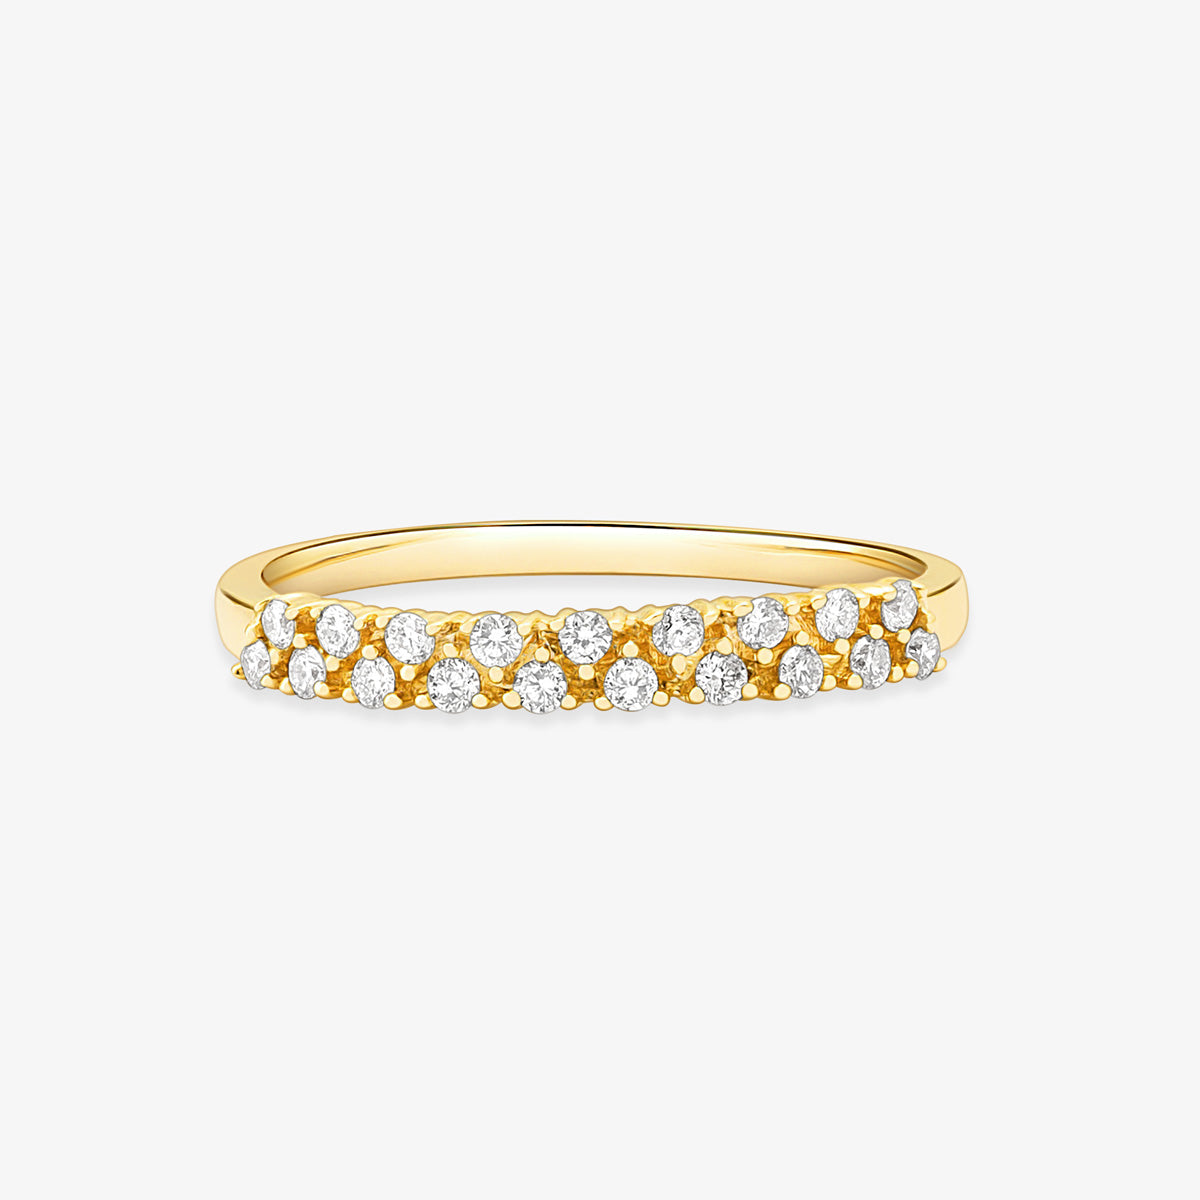 2 Row Stackable Diamond Ring In Solid Gold - estellacollection